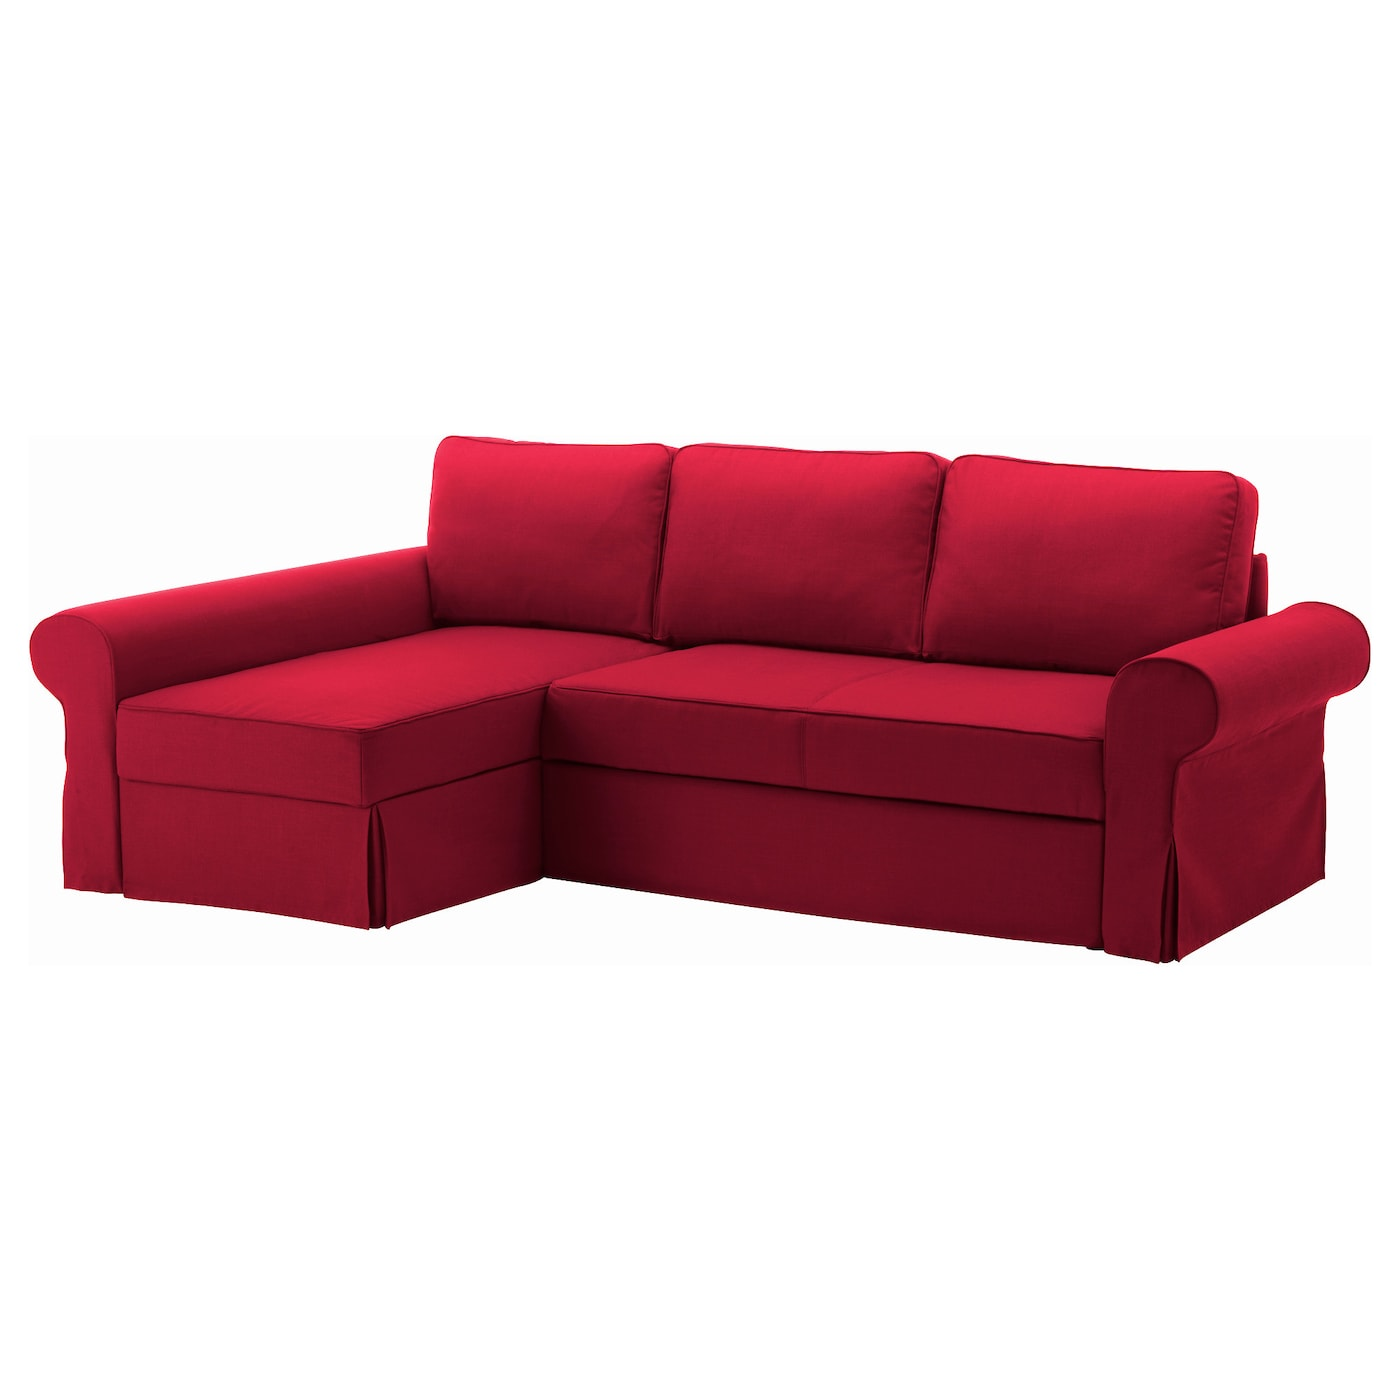 Backabro sofa bed with chaise longue nordvalla red ikea for Chaise longue bed